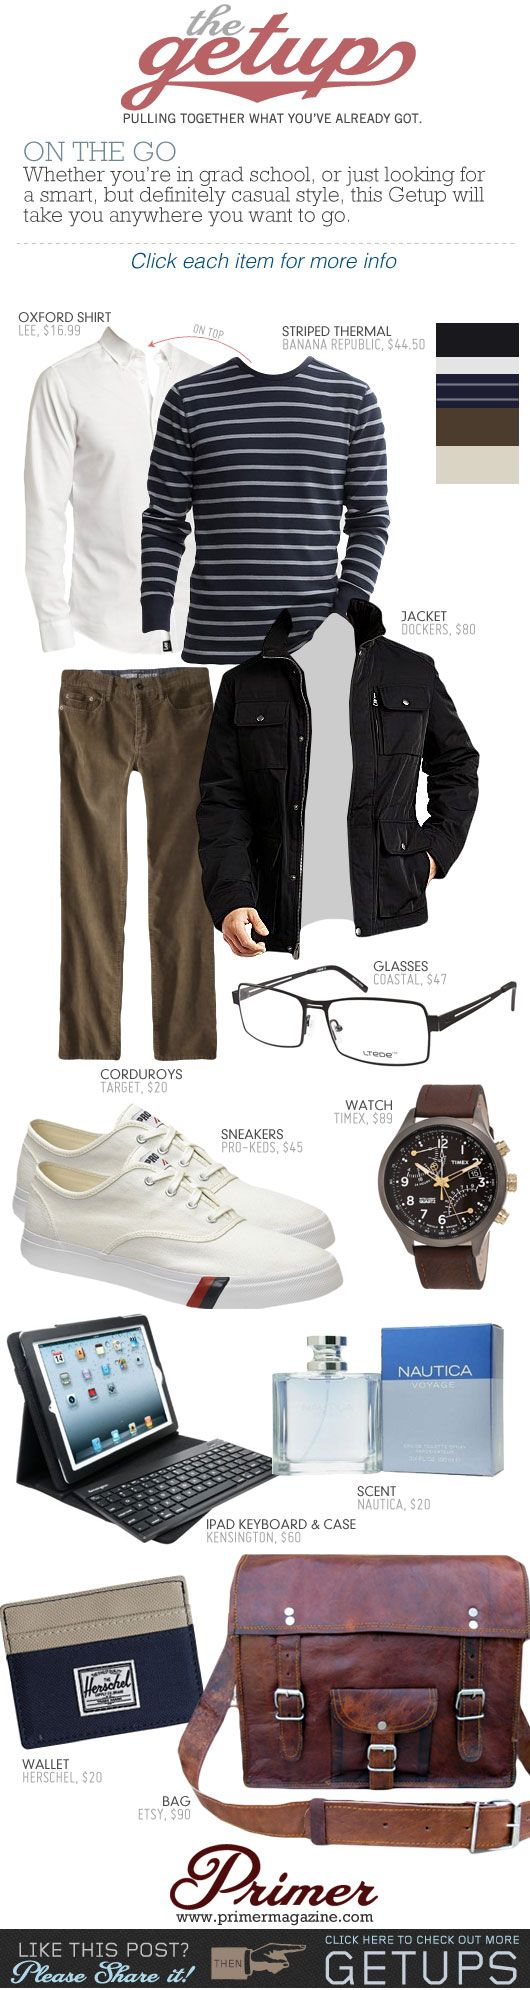 The Getup: On The Go - Primer